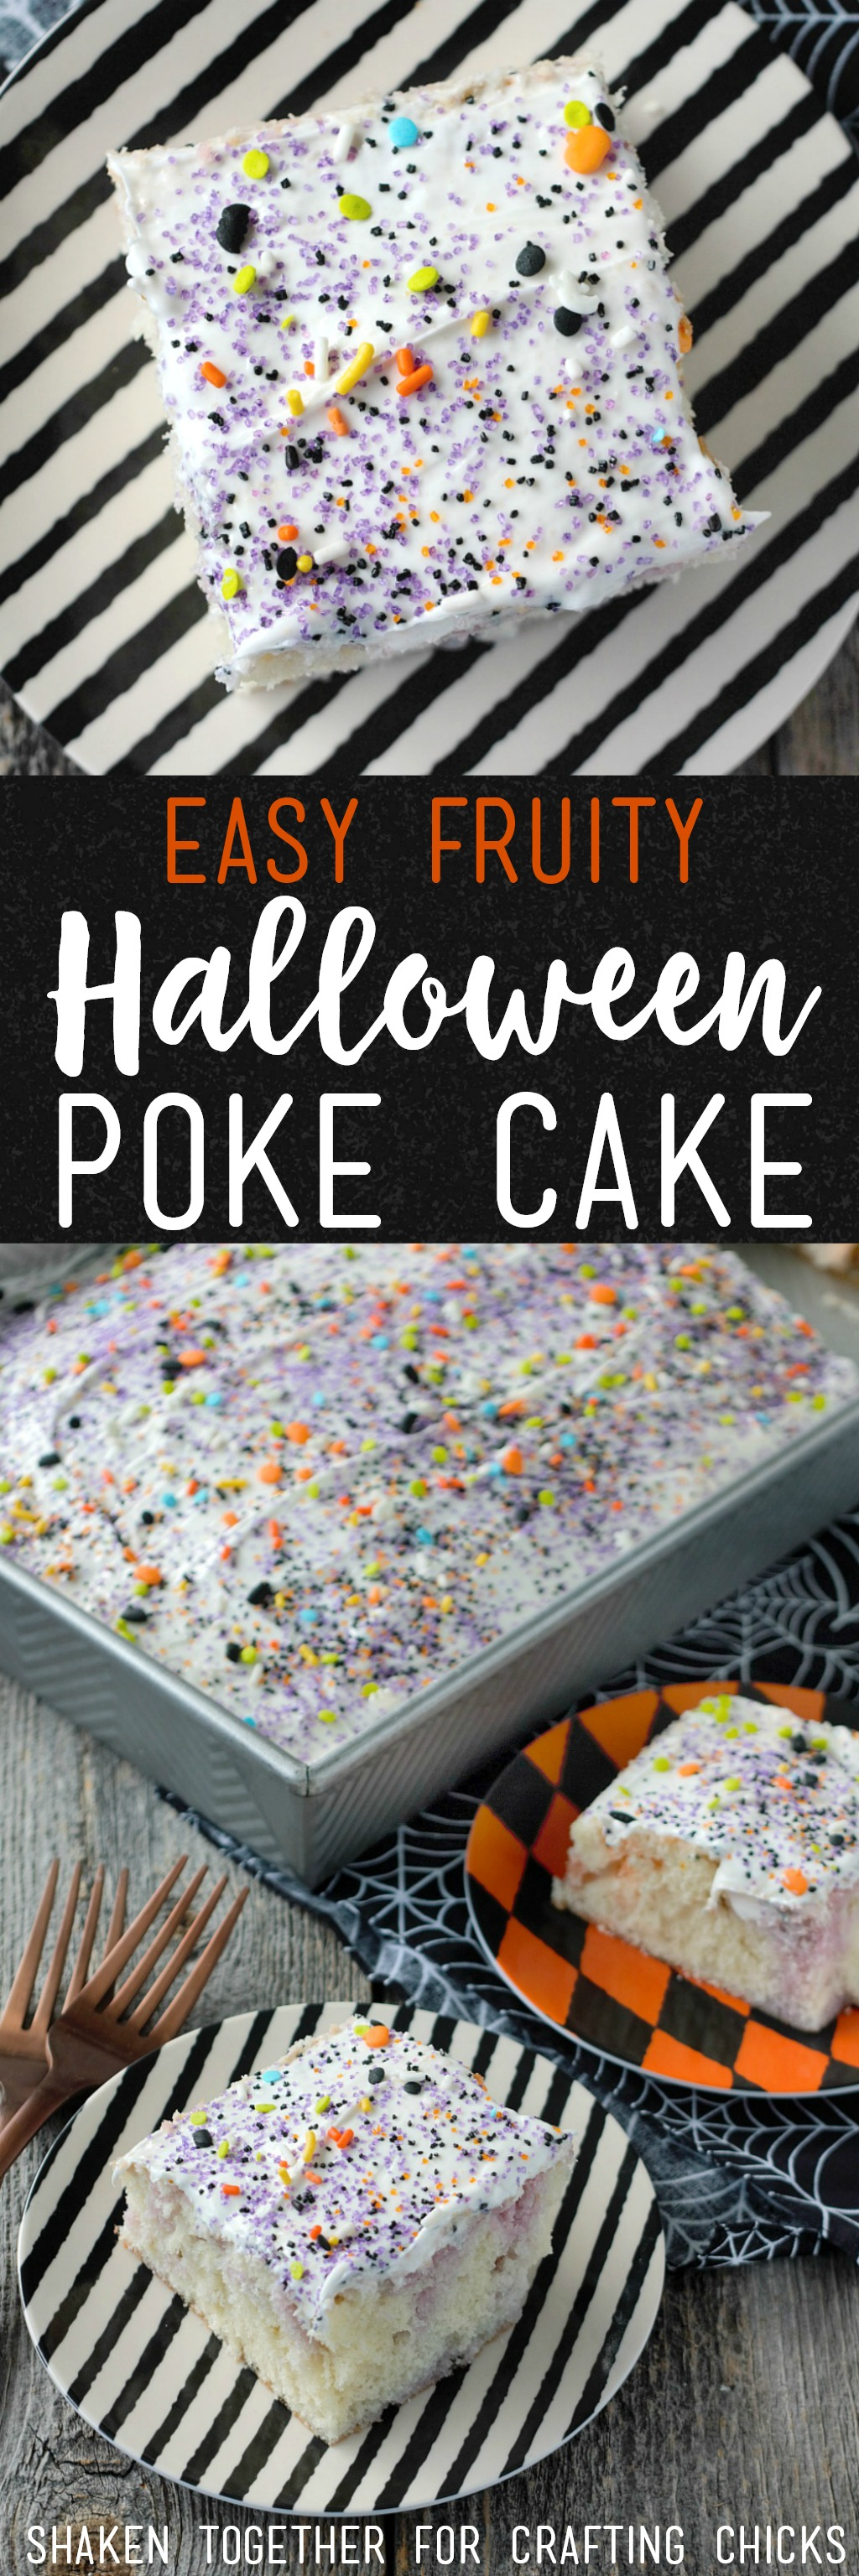 With fruity swirls of purple and orange in a soft white cake, this Easy Fruity Halloween Poke Cake is a spooky sweet treat!